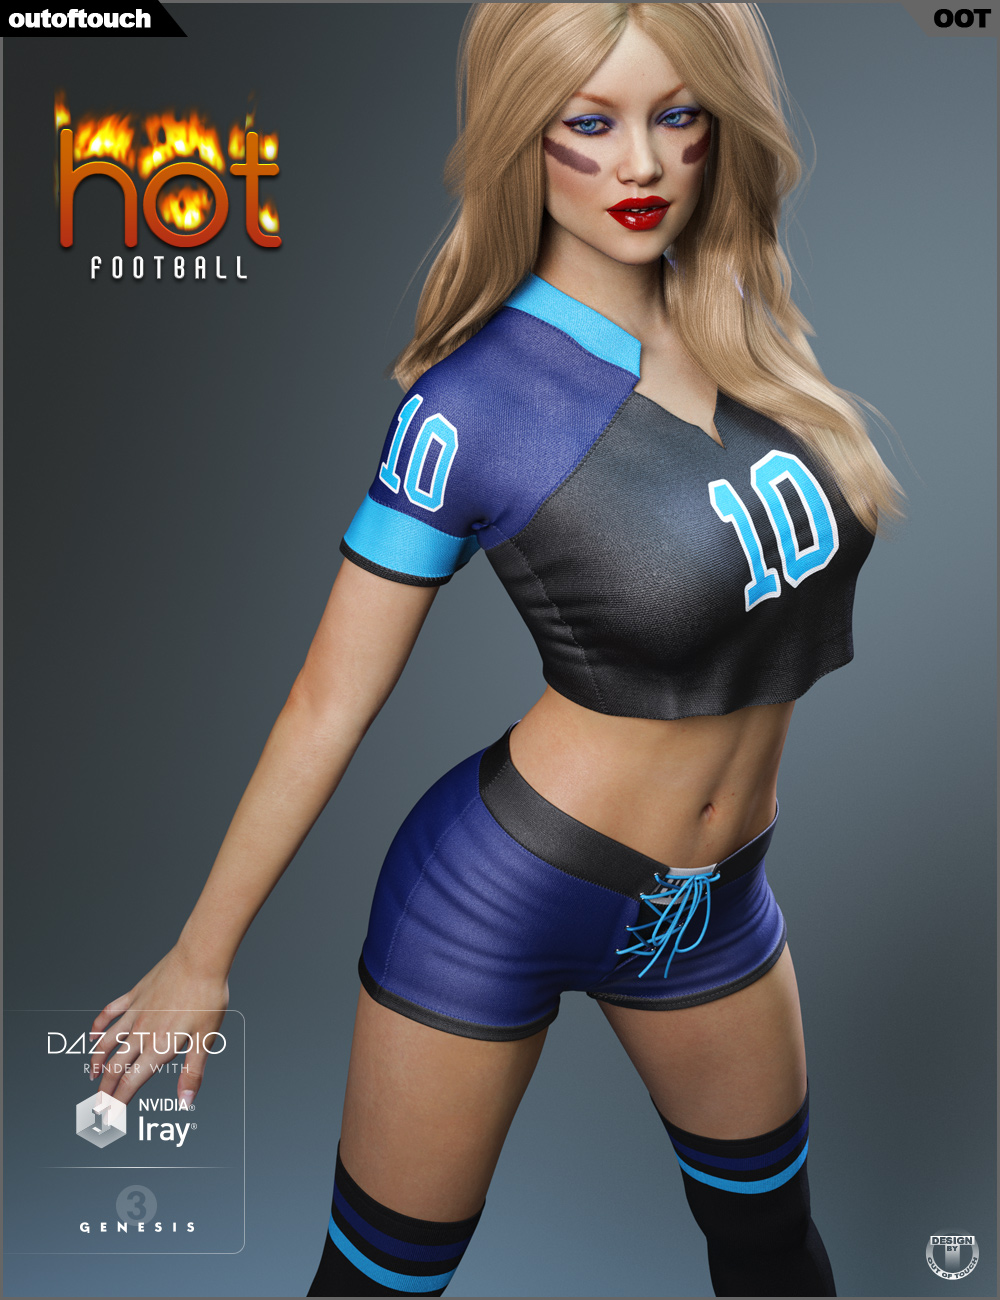 HOT Football Outfit for Genesis 3 Female(s) by: outoftouch, 3D Models by Daz 3D